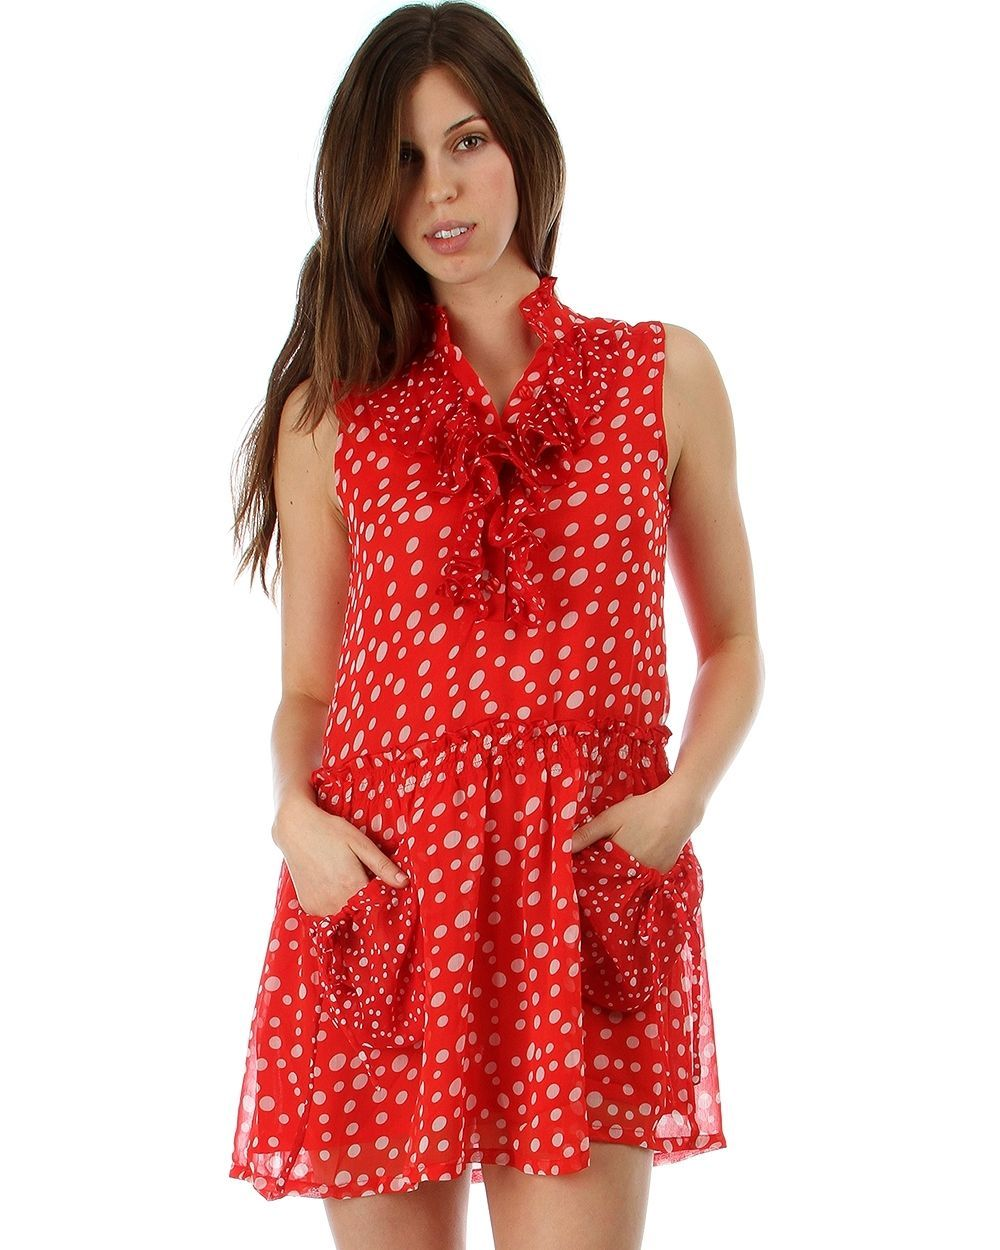 Image 3 of Sweet Flirty Red Chiffon Polka Dot Sleeveless Anytime Mini Dress w/ Pockets - Re